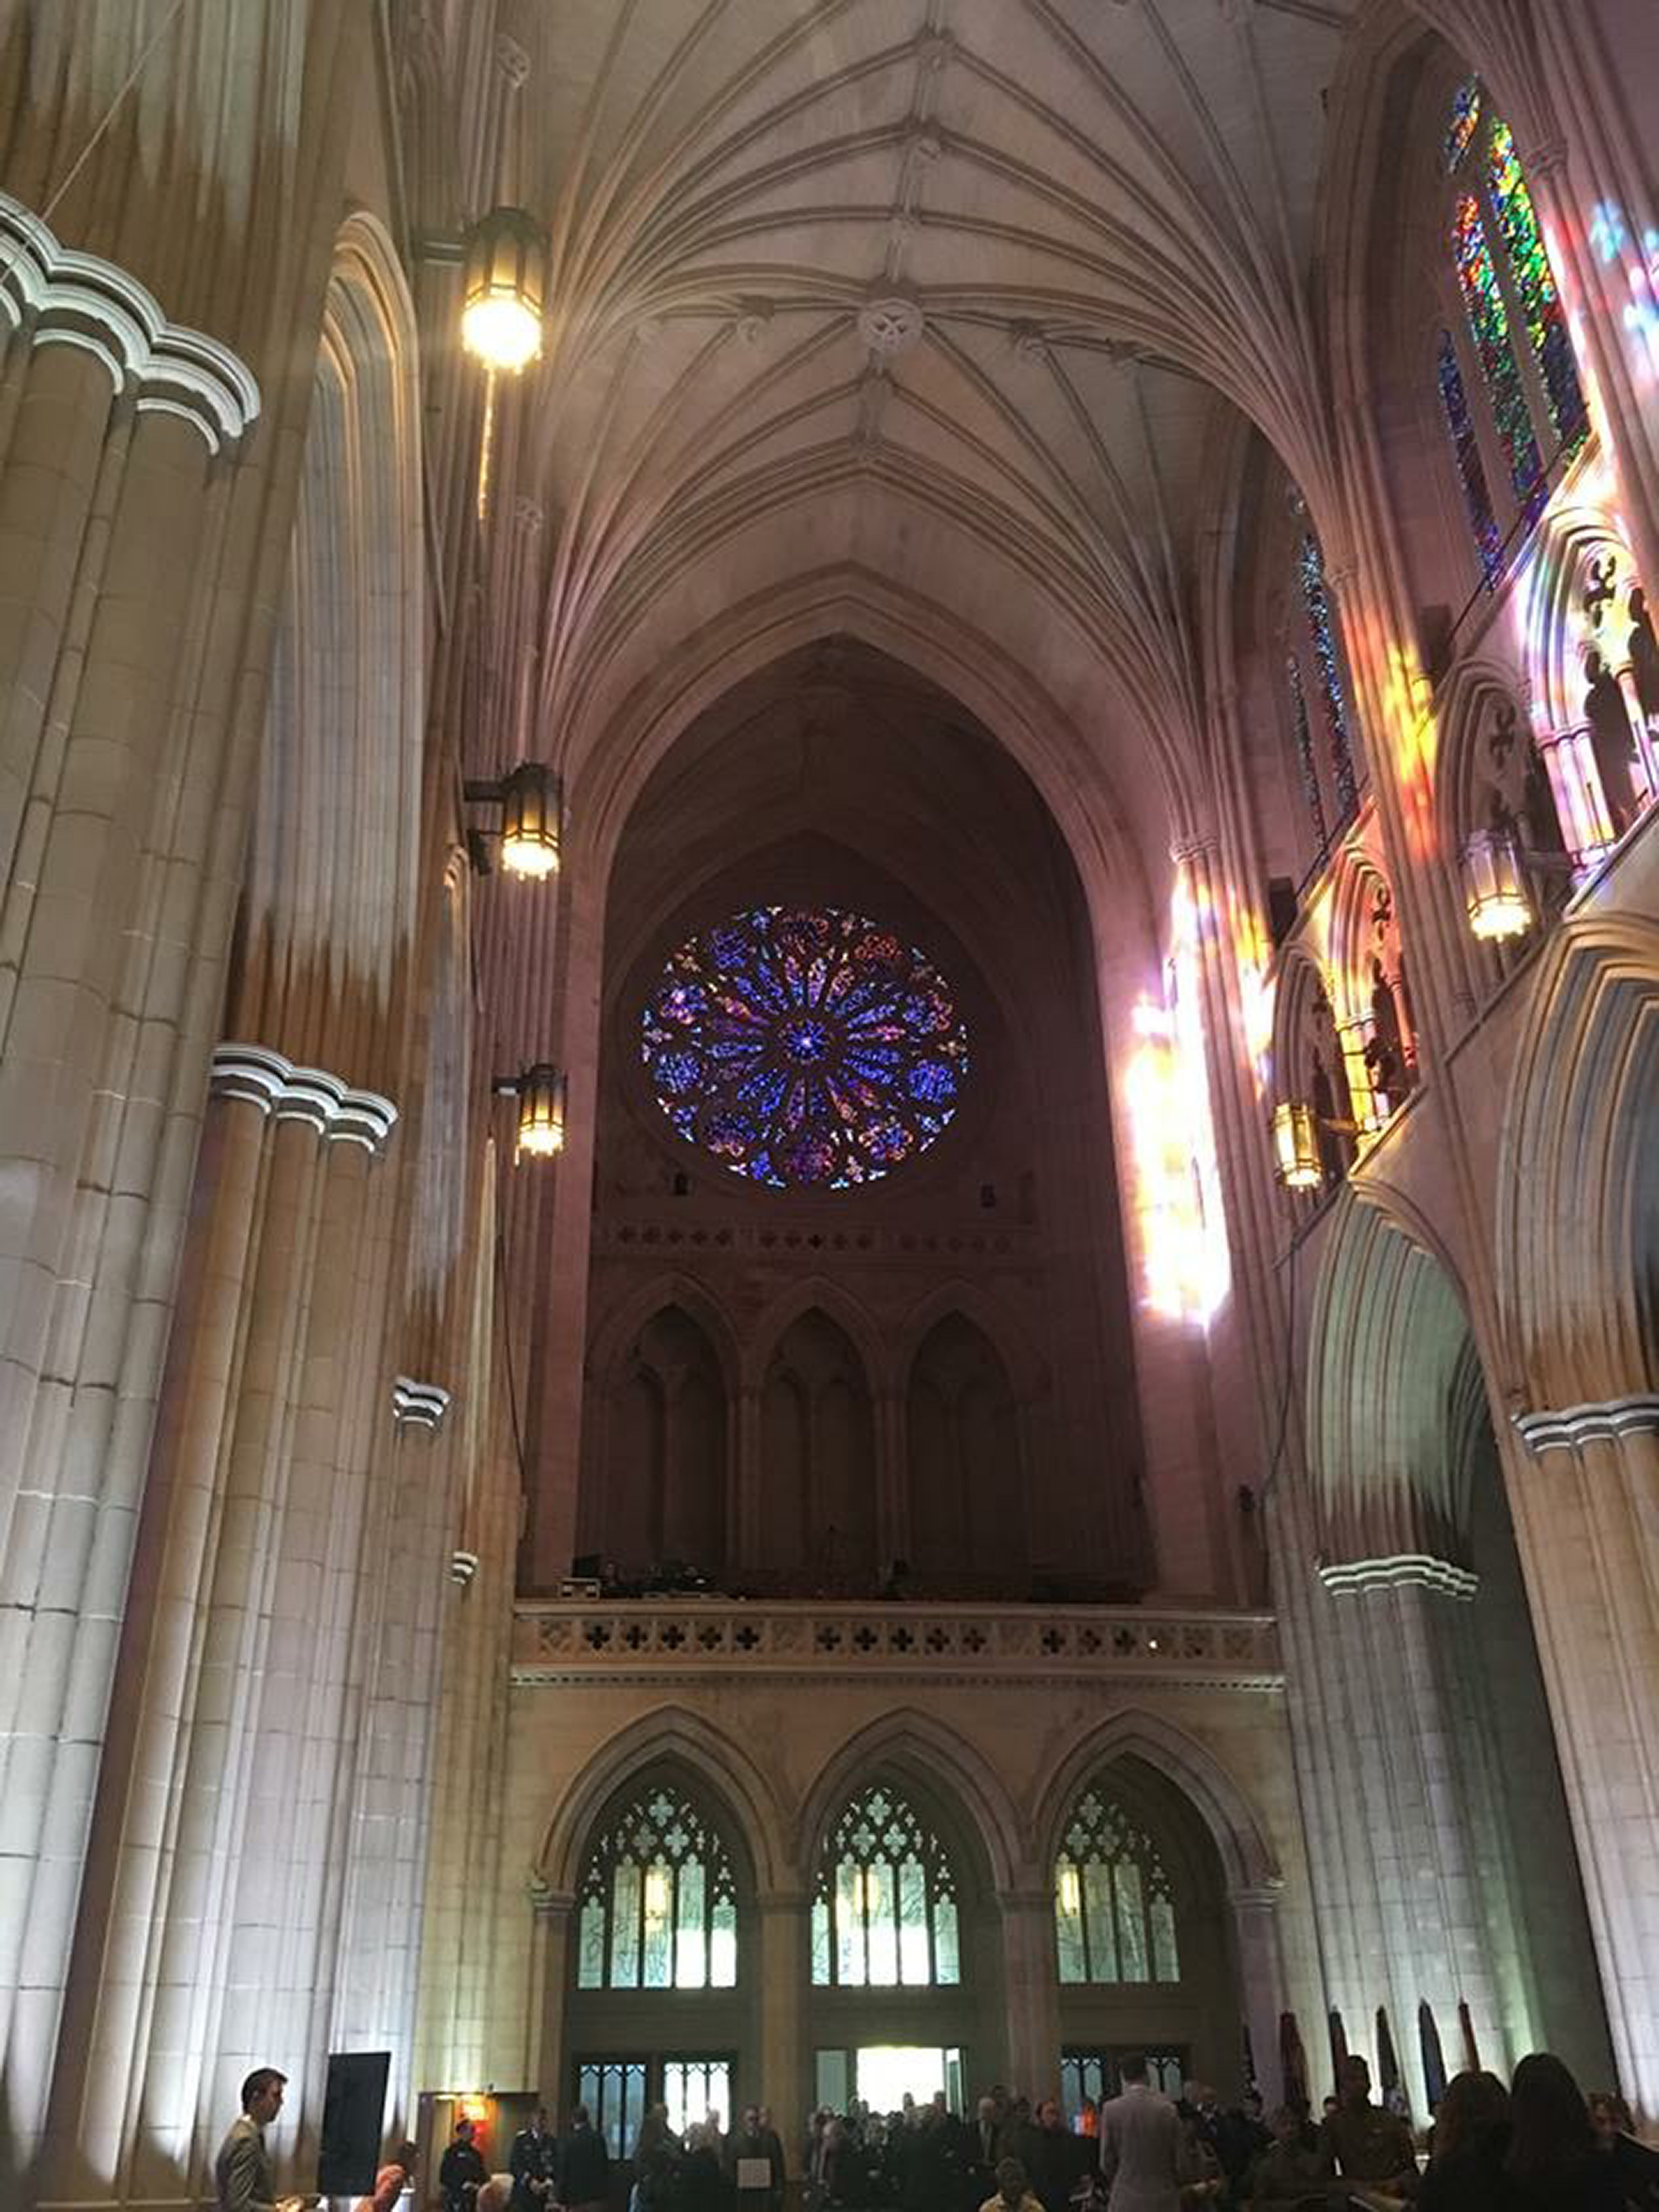 Photo of the inside of the cathedral.  A large, circular stained glass window is the focal point fo the picture